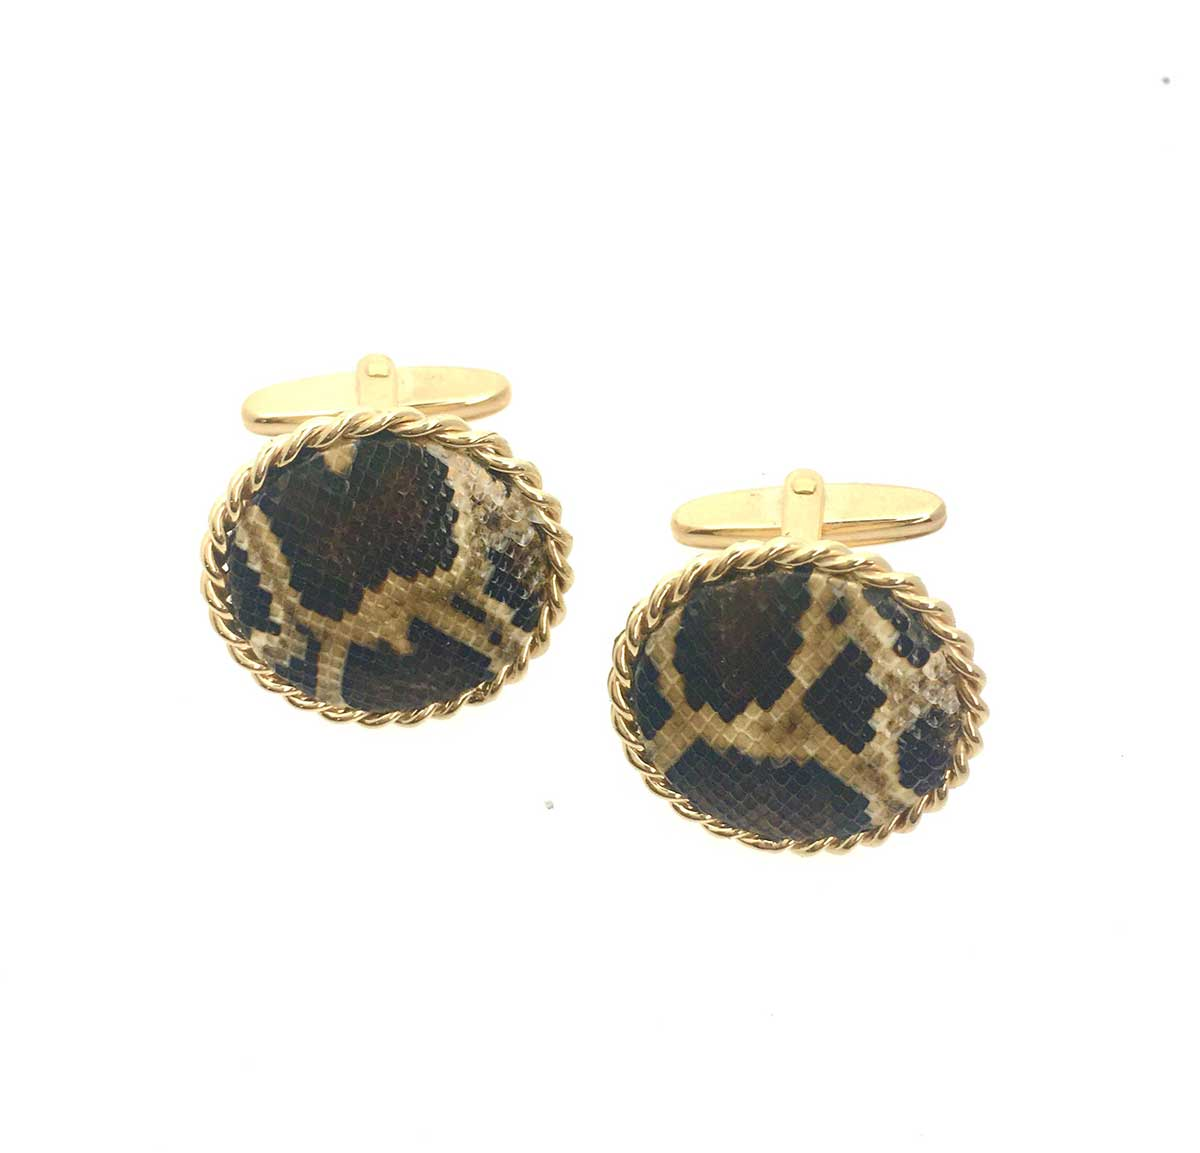 Invasive burmese python skin and yellow gold cufflinks